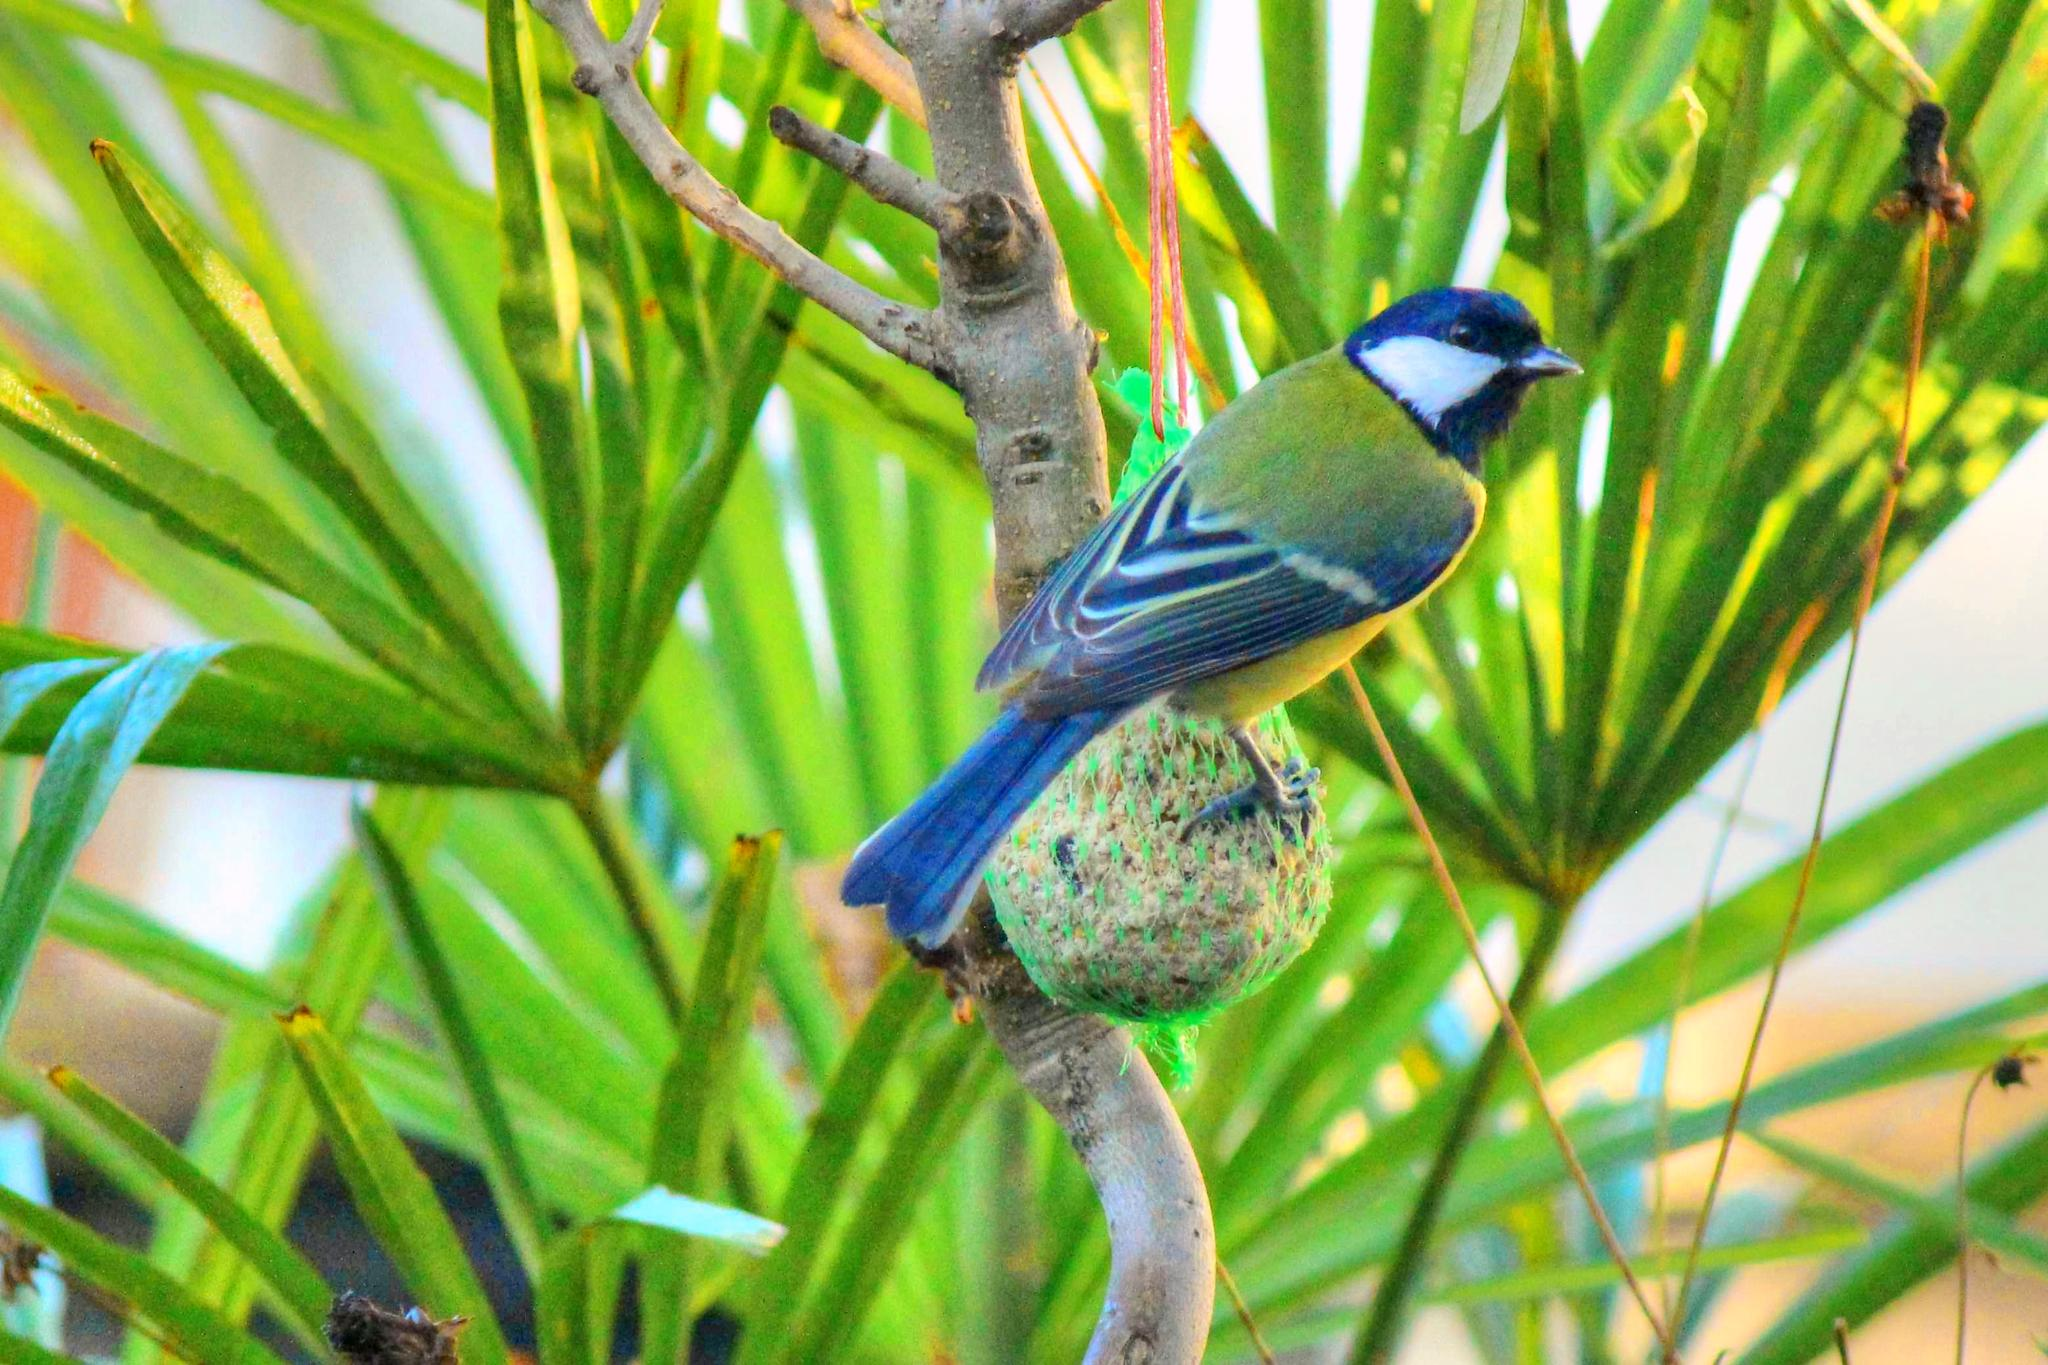 The Blue Tit by Christian Meyer